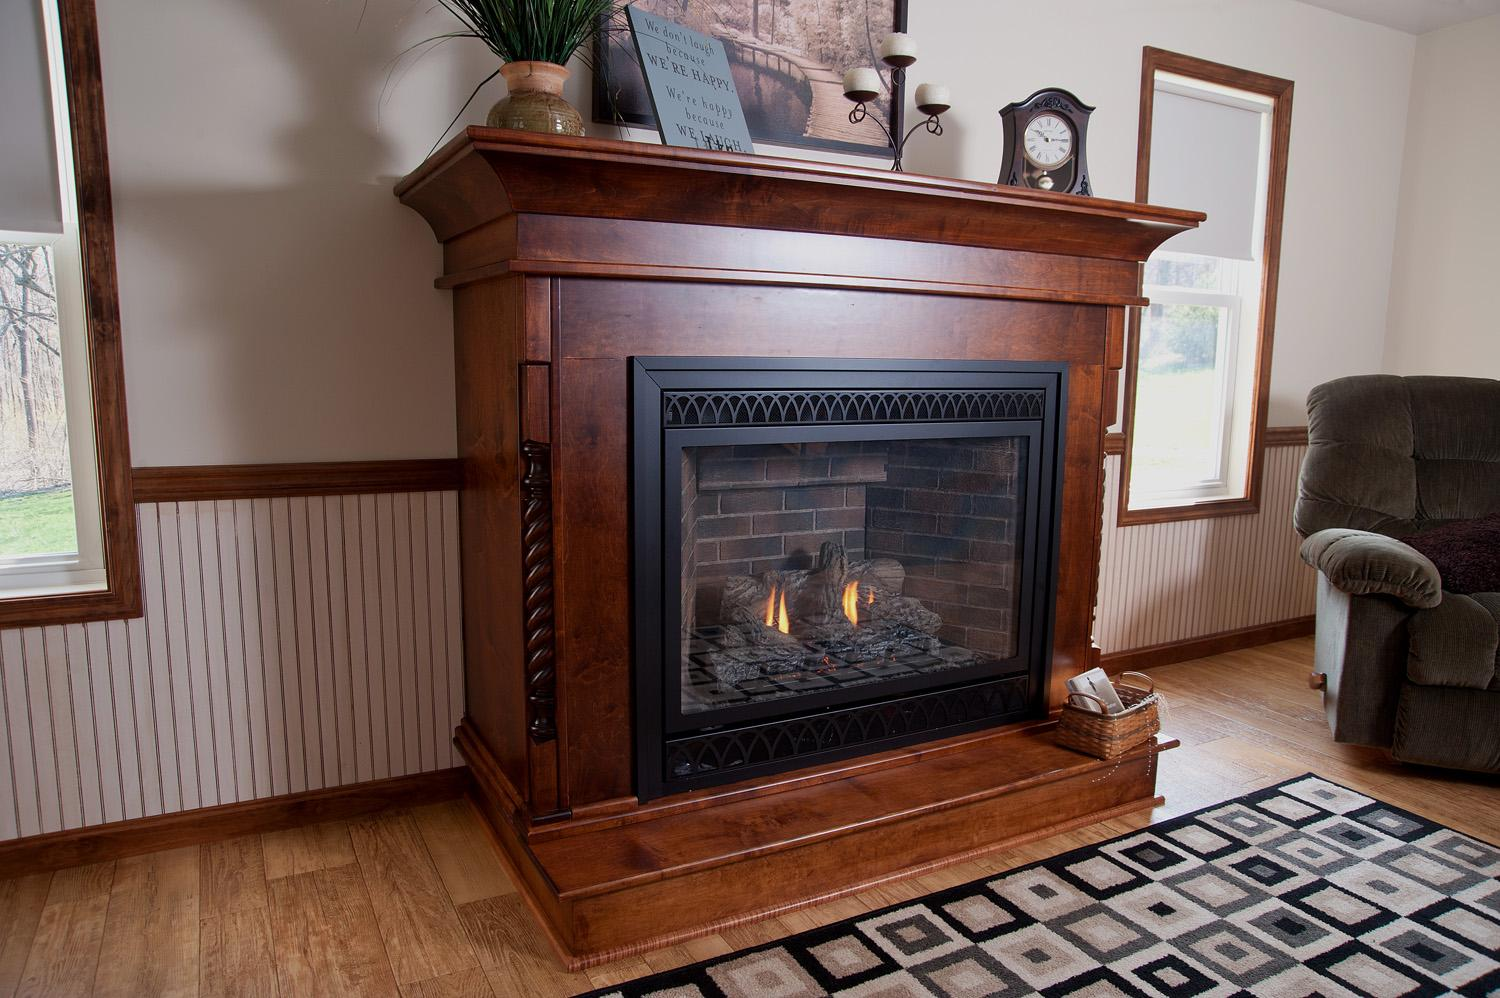 Custom built fireplace - the charm of wood and the practicality of gas